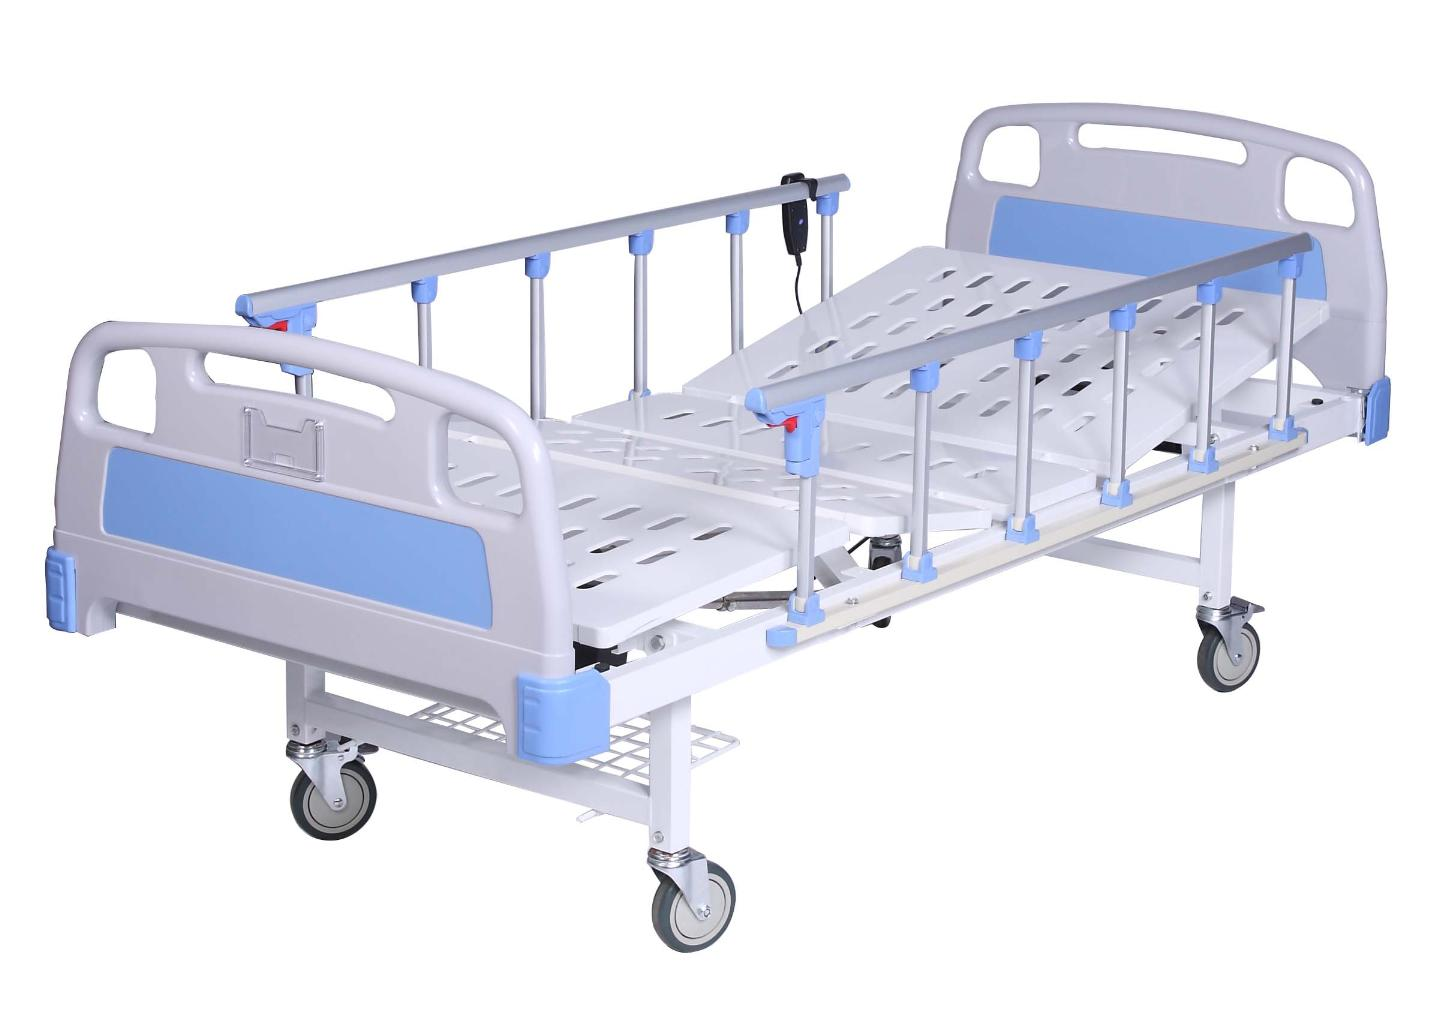 introducing stretcher the patient platinum medical hospital bed noa transport noah